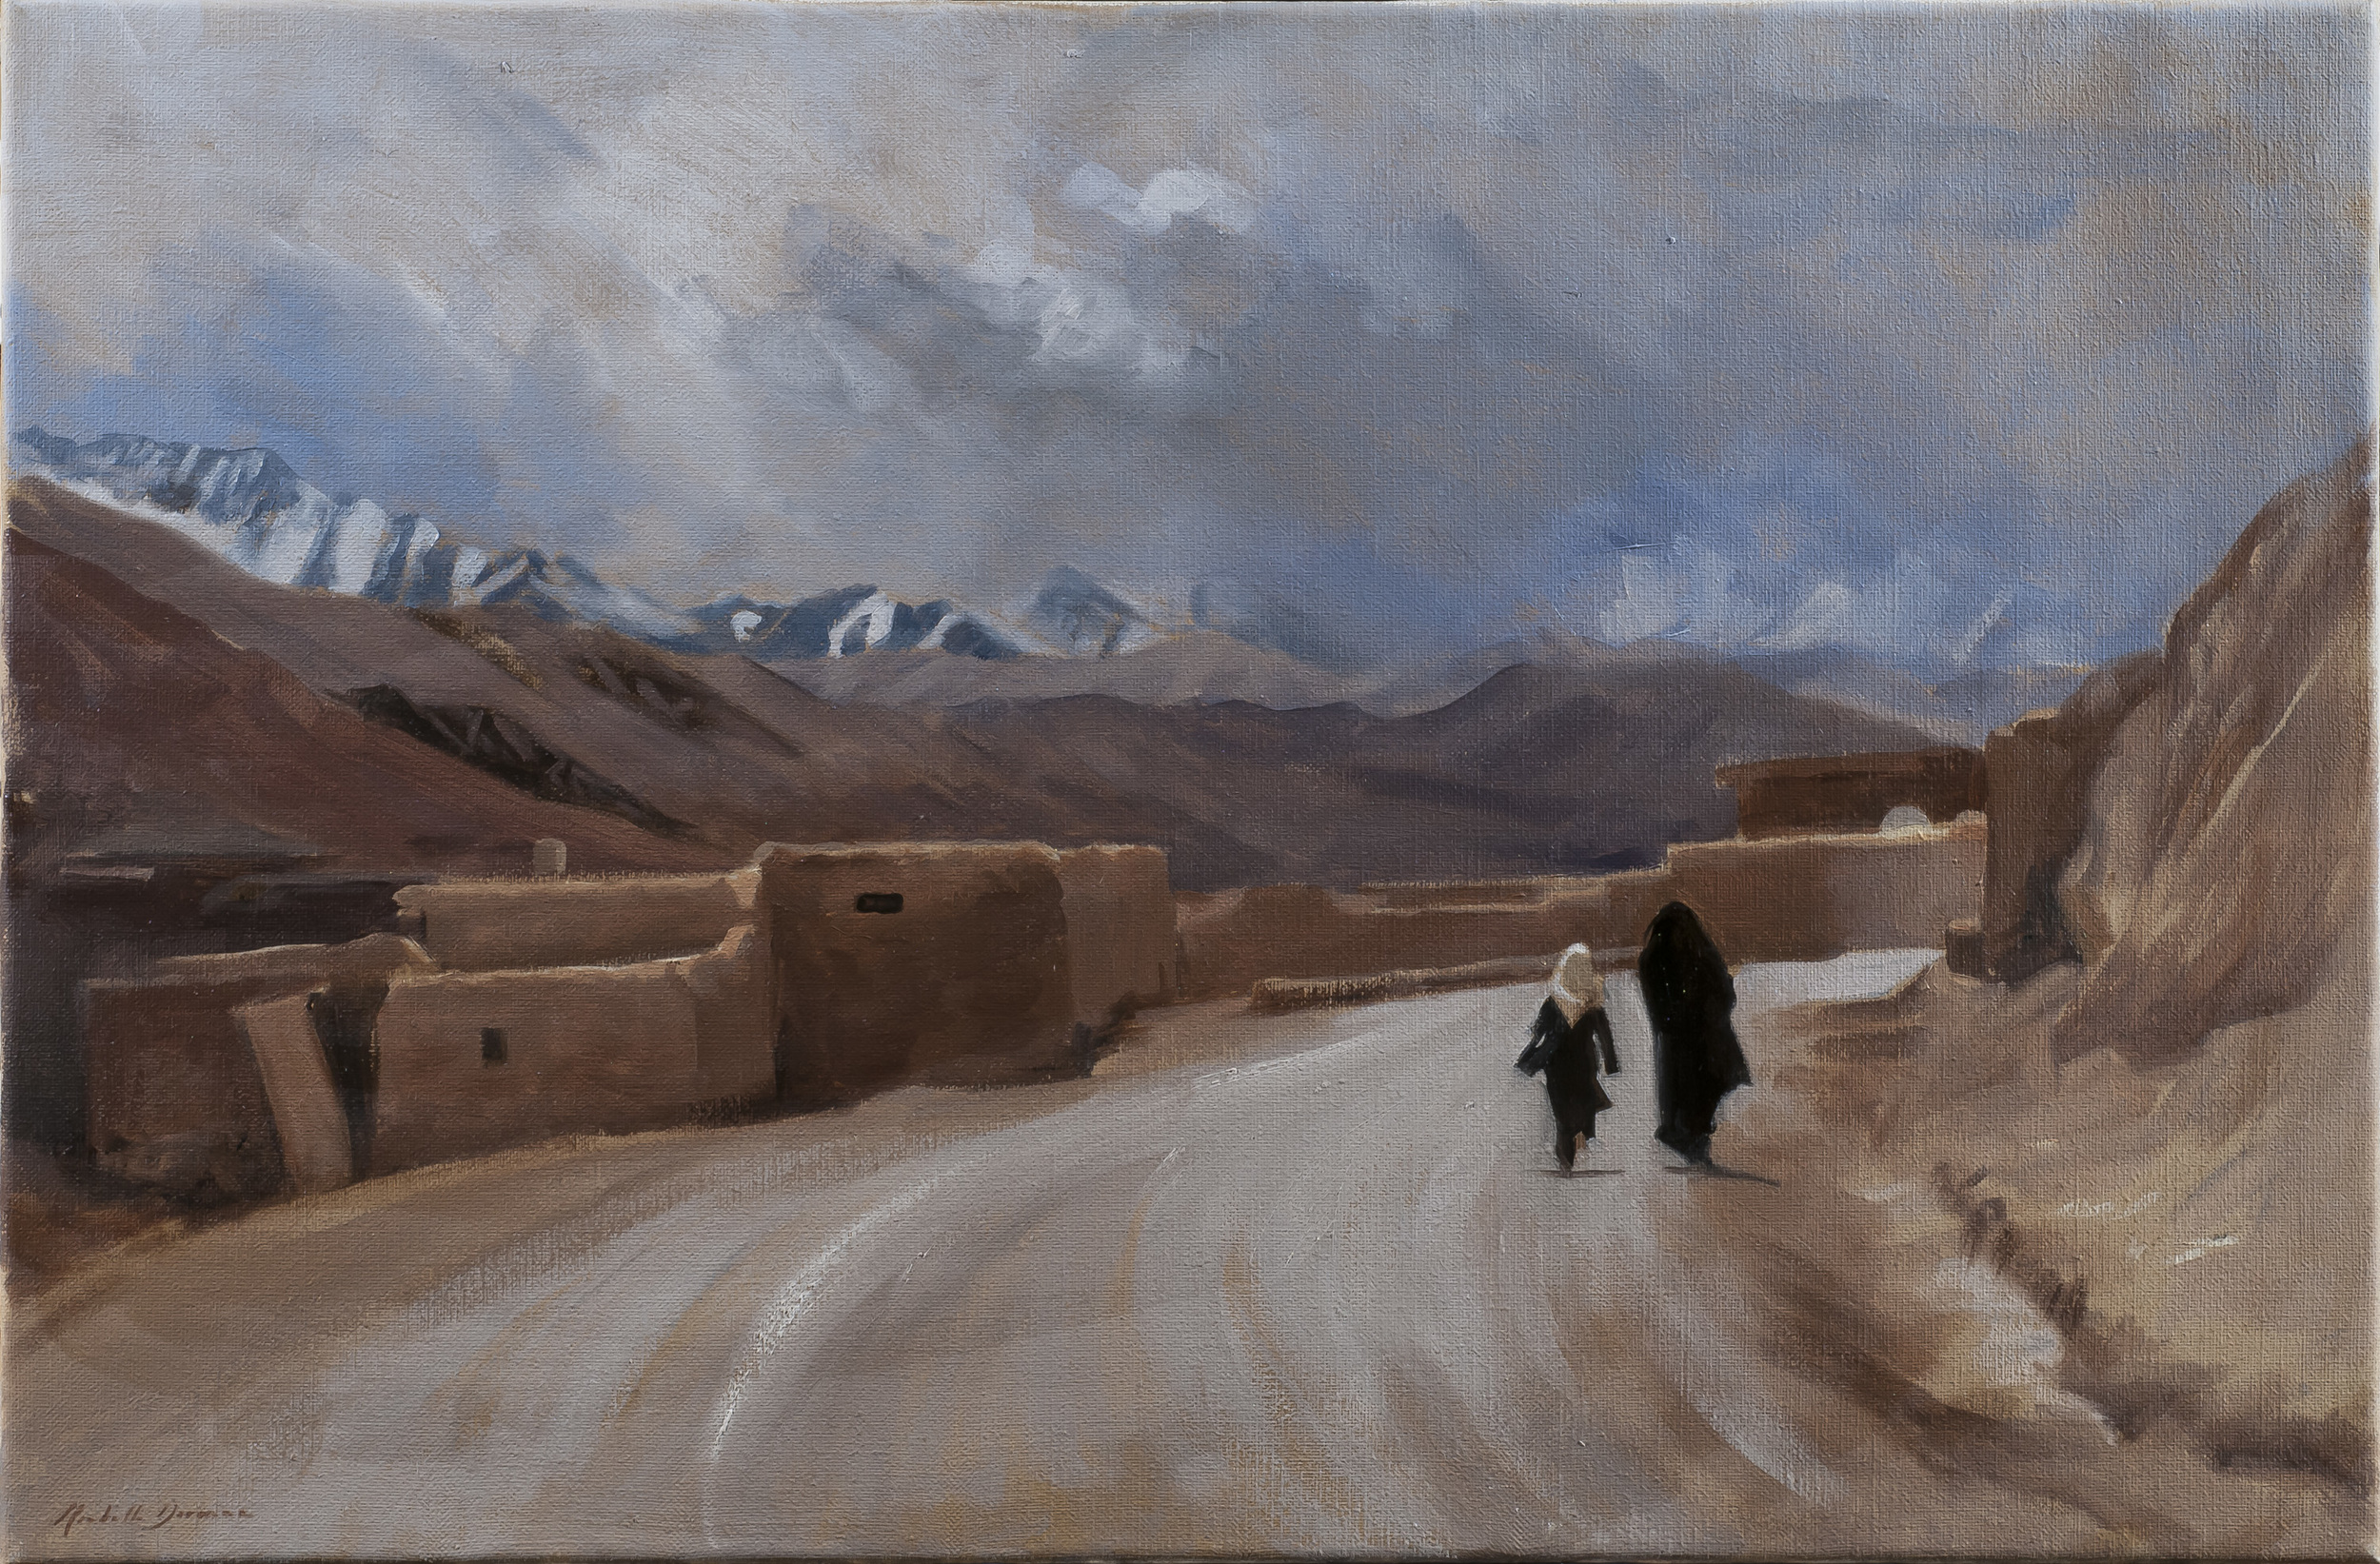 Going to School, 2010, Afghanistan